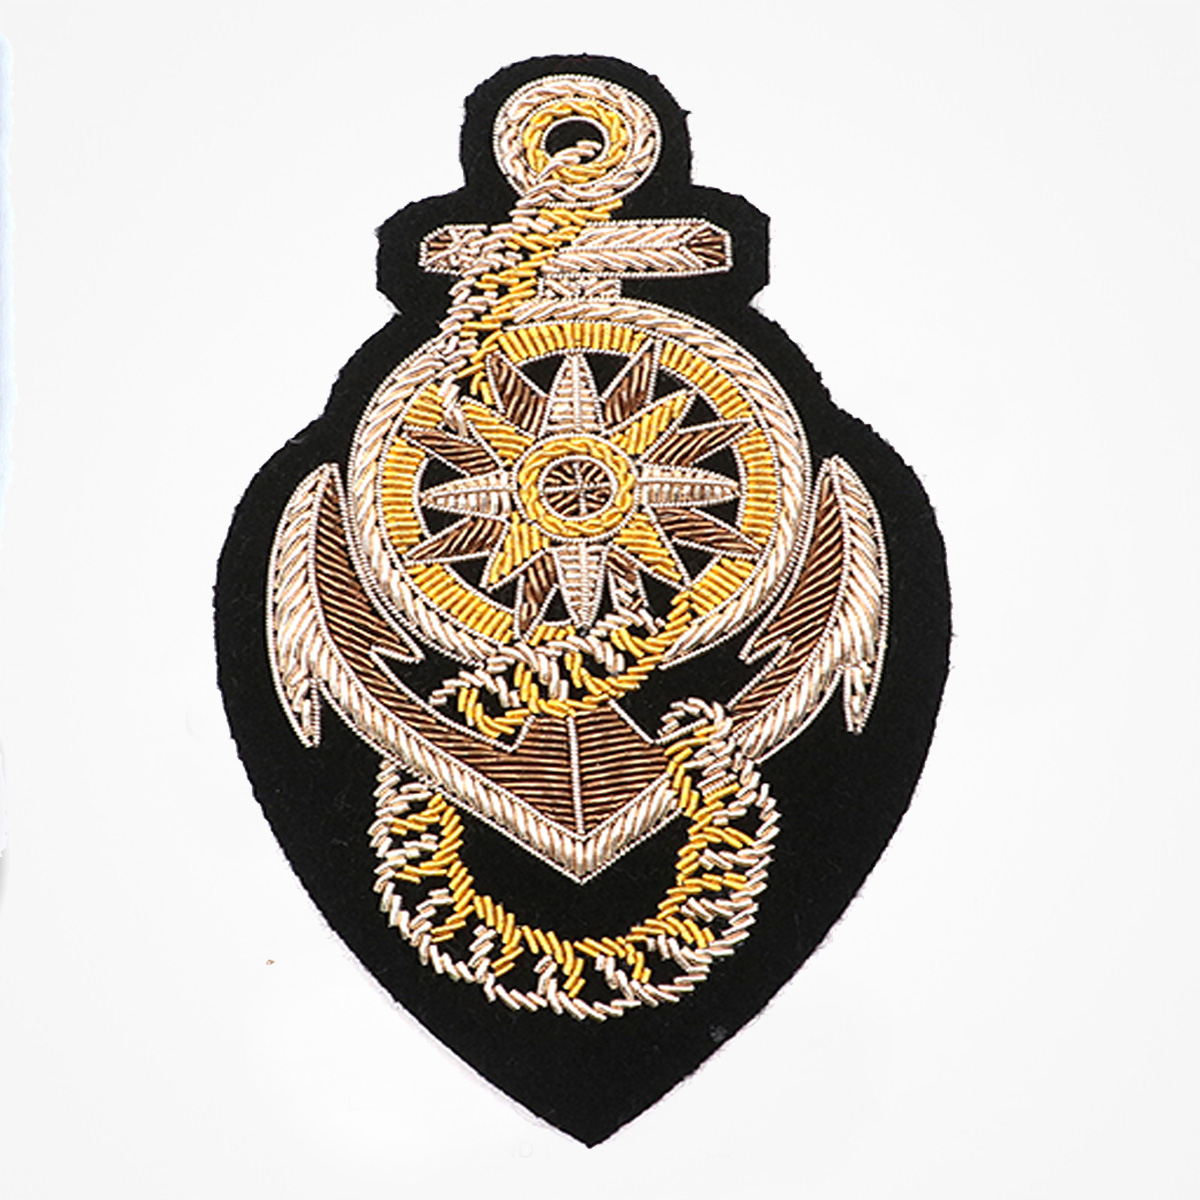 Blazer Patch Emblem Hand embroidered rope design and border in finest gold bullion with club insignia in colours - Fashionable 3D embroidered look Made by skilled artisans Bullion wire and silk thread hand Stitched on Black color Felt Available in gold and silver colors Size = 130 mm height 75 mm width sew-on backing: Perfect for caps, sports jacket, leather jackets, blazer coat, Blazer Pocket, shirts uniforms, Accessories and many More Pin backing: easy to removable , insignia of club members and officer with trefoil and insignia of rank 5